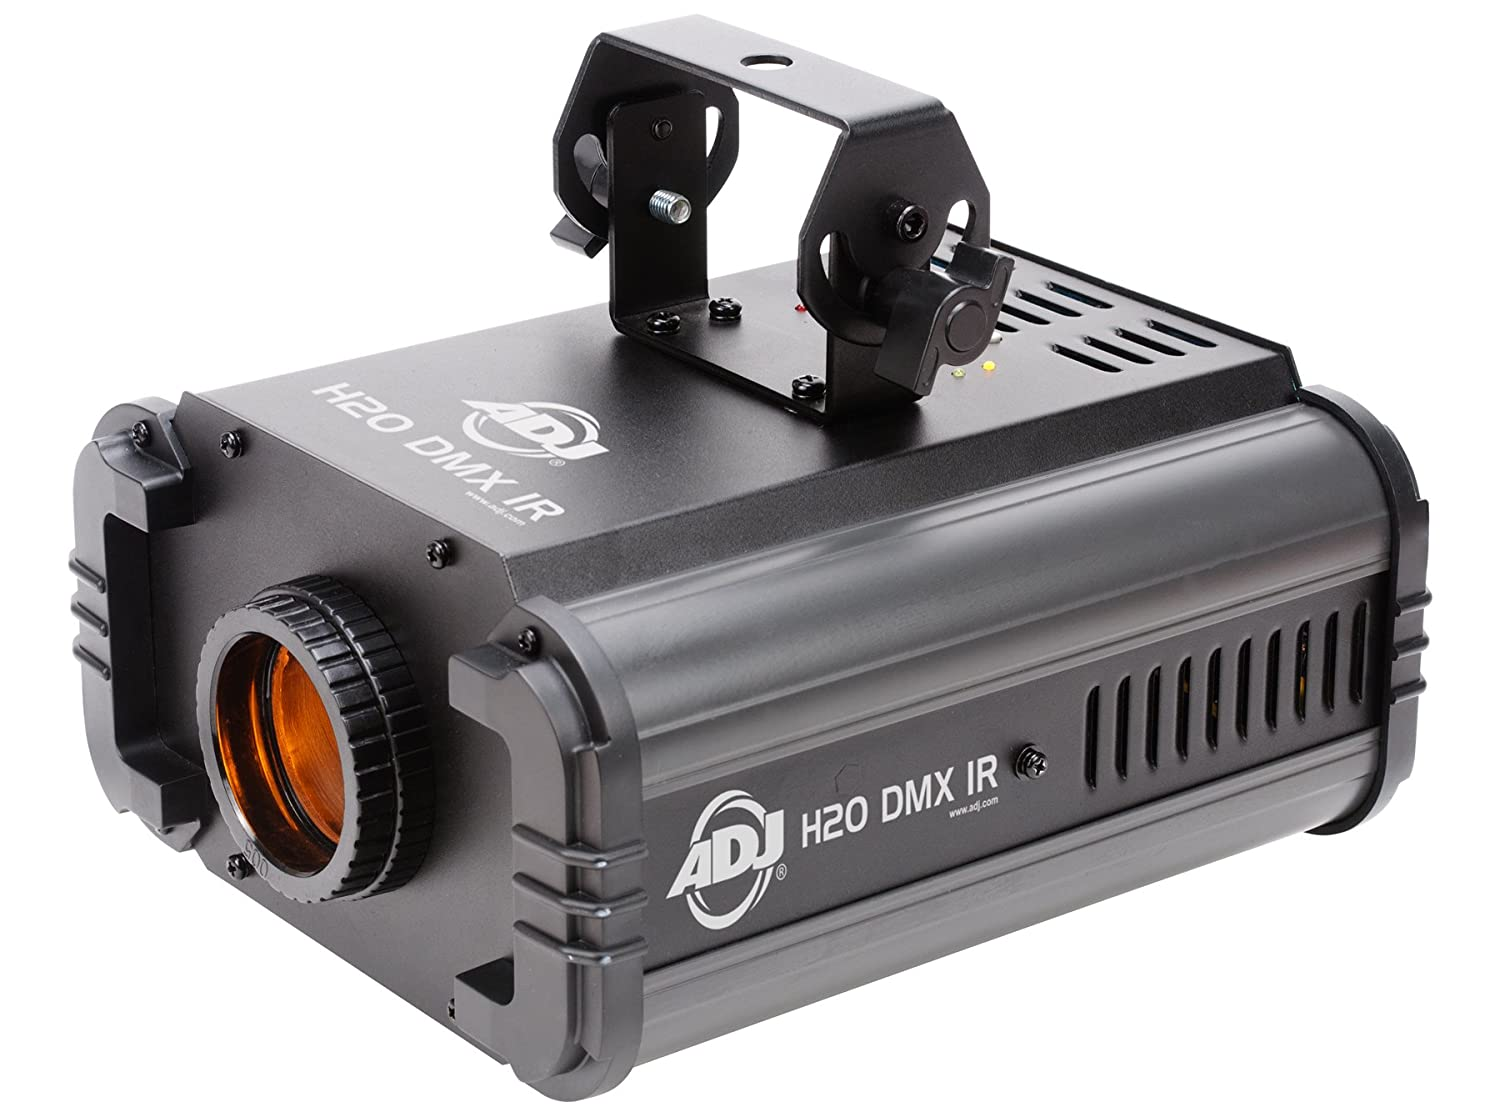 ADJ Products H2O DMX PRO IR Led Water / Fire Effect light